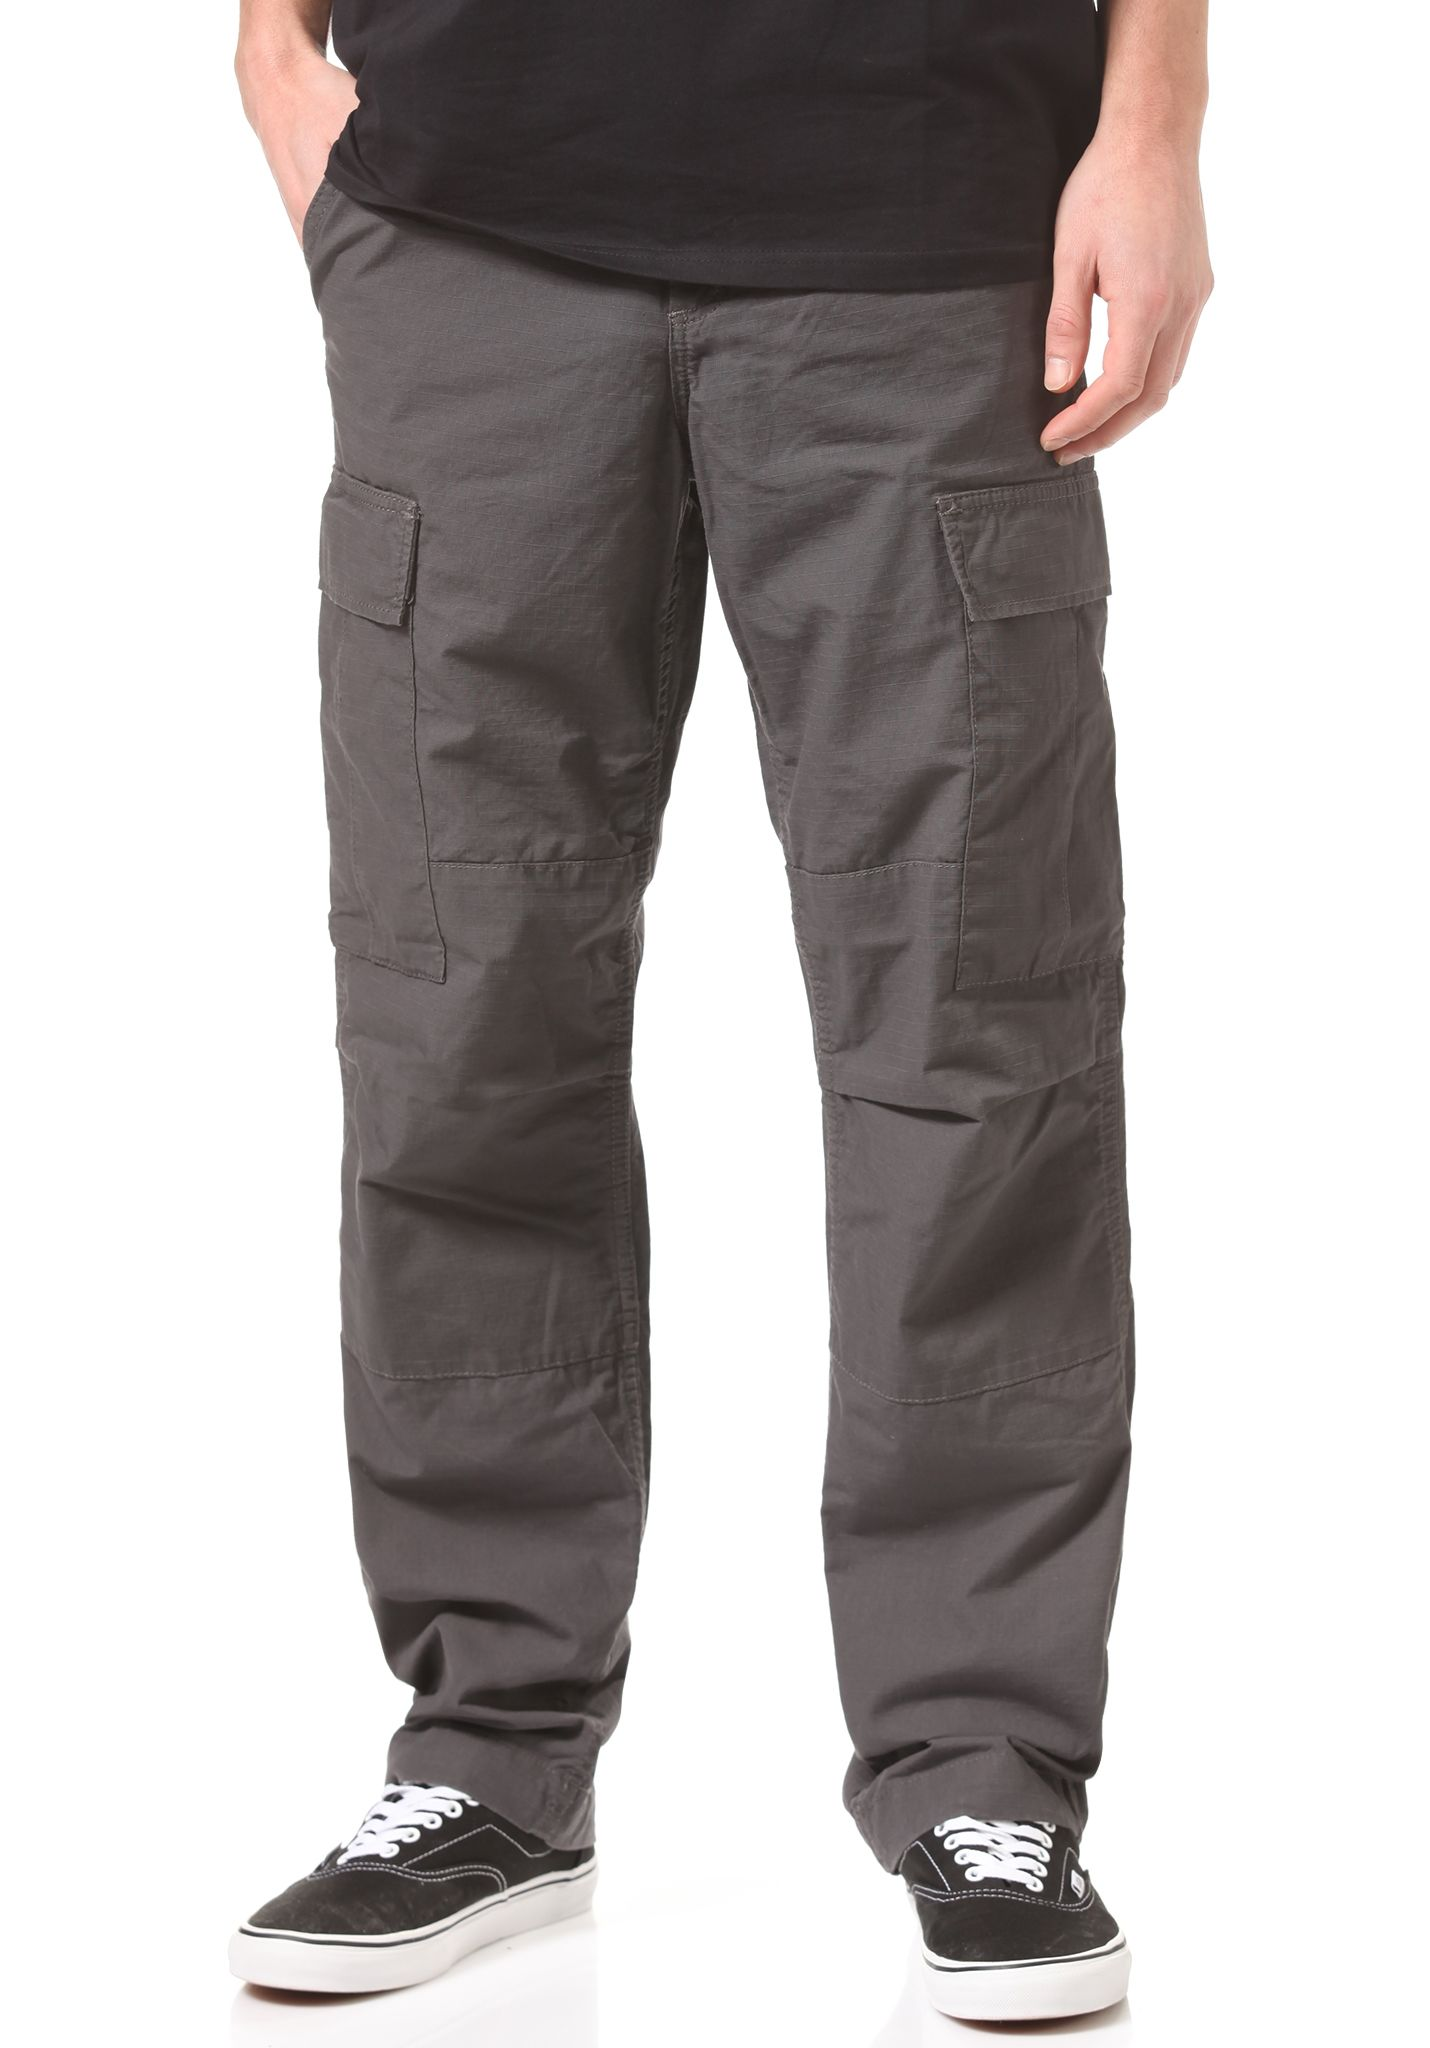 7dc428f9 carhartt WIP Regular - Cargo Pants for Men - Grey - Planet Sports